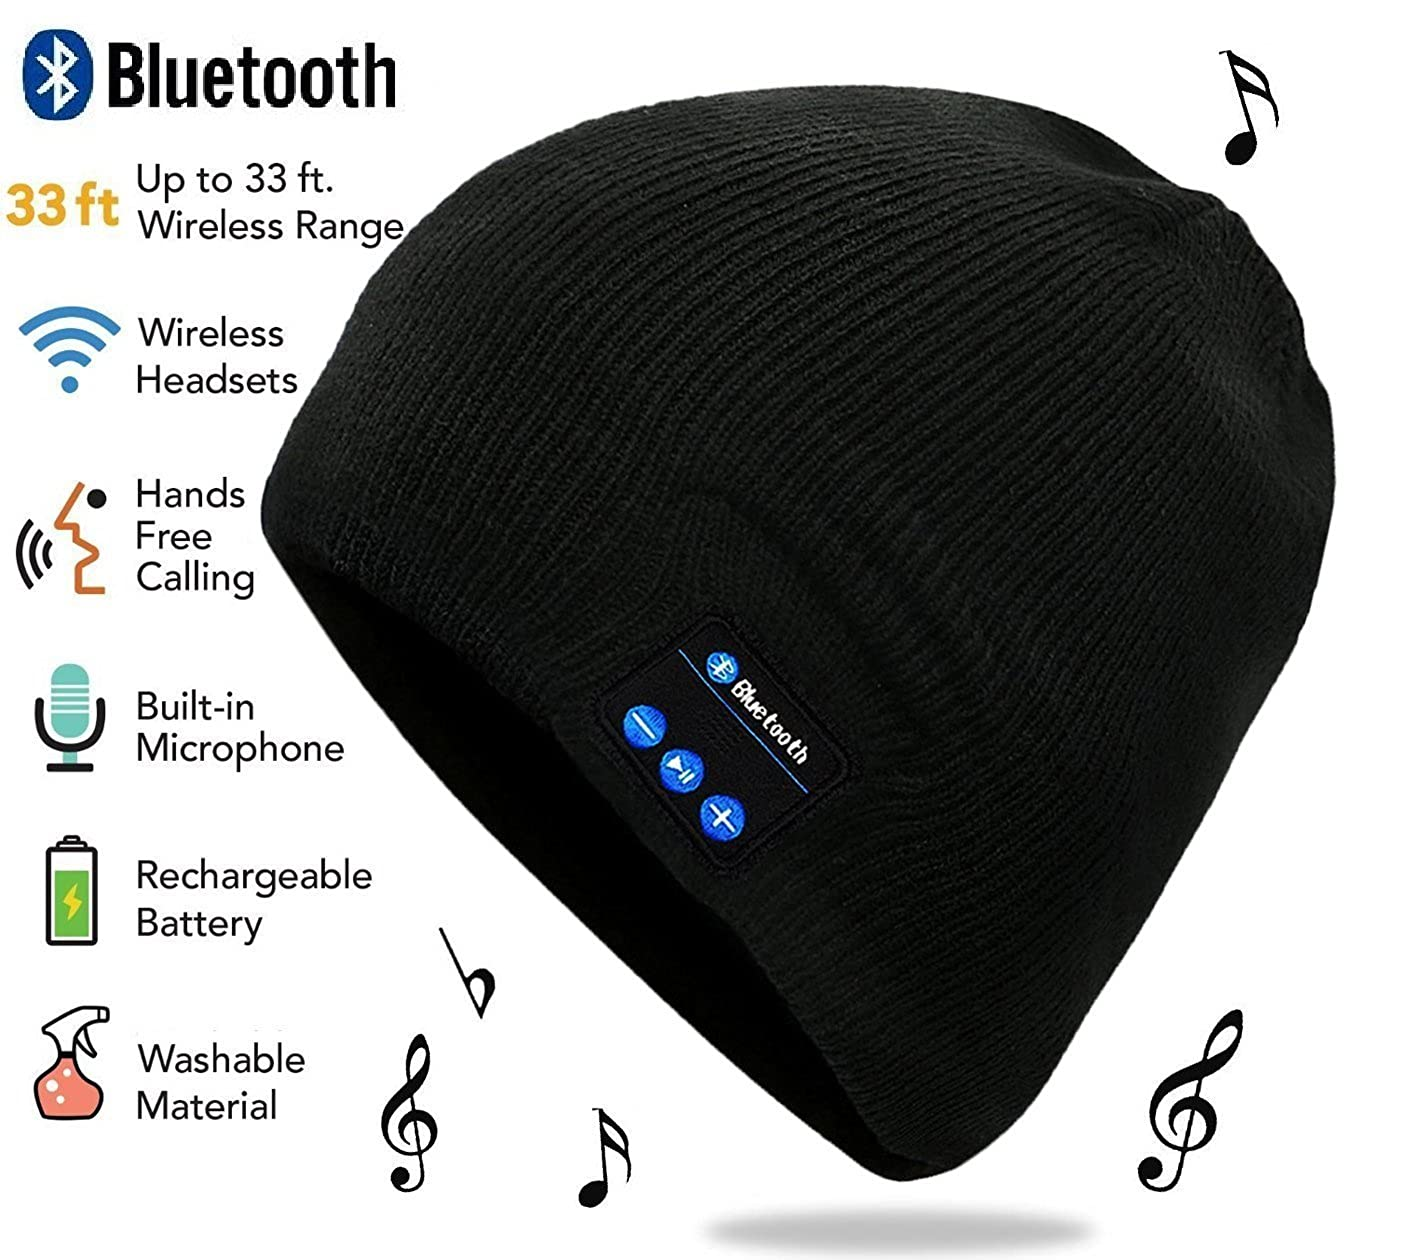 LifeMadeSimple Beanie Hat with Bluetooth Headphones, One Size Fits All, Black